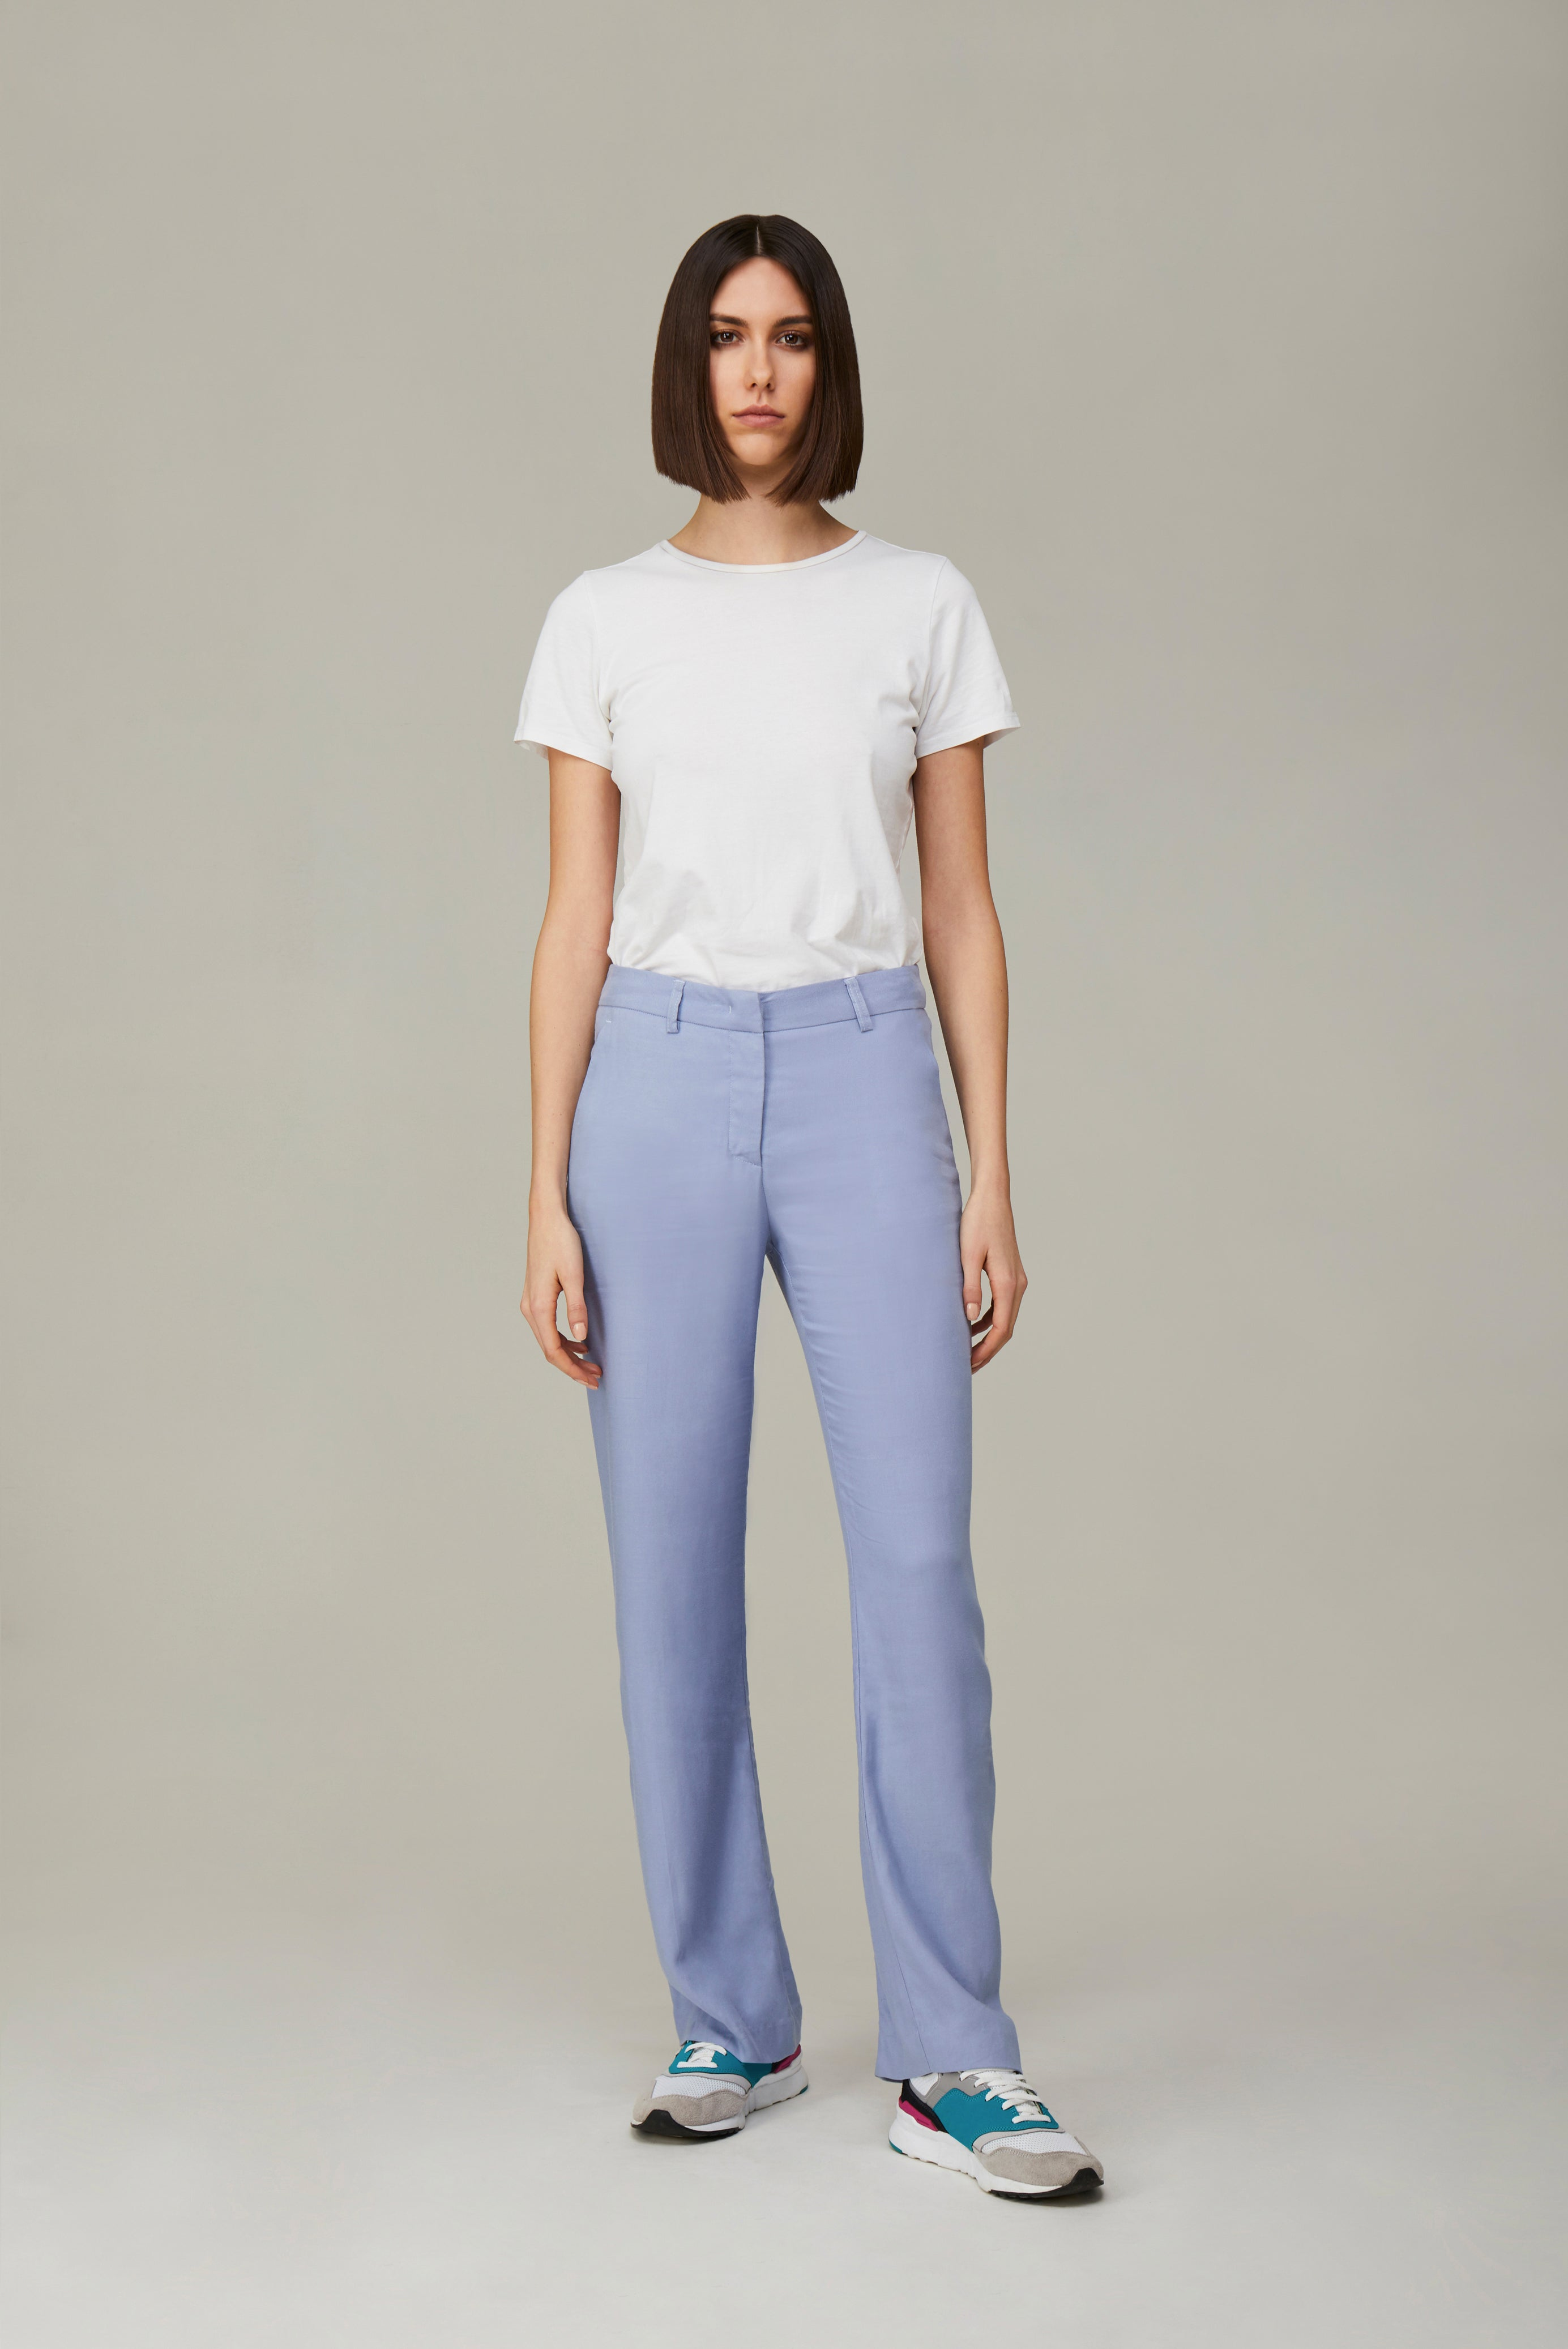 The Baby Blue Lover Pants